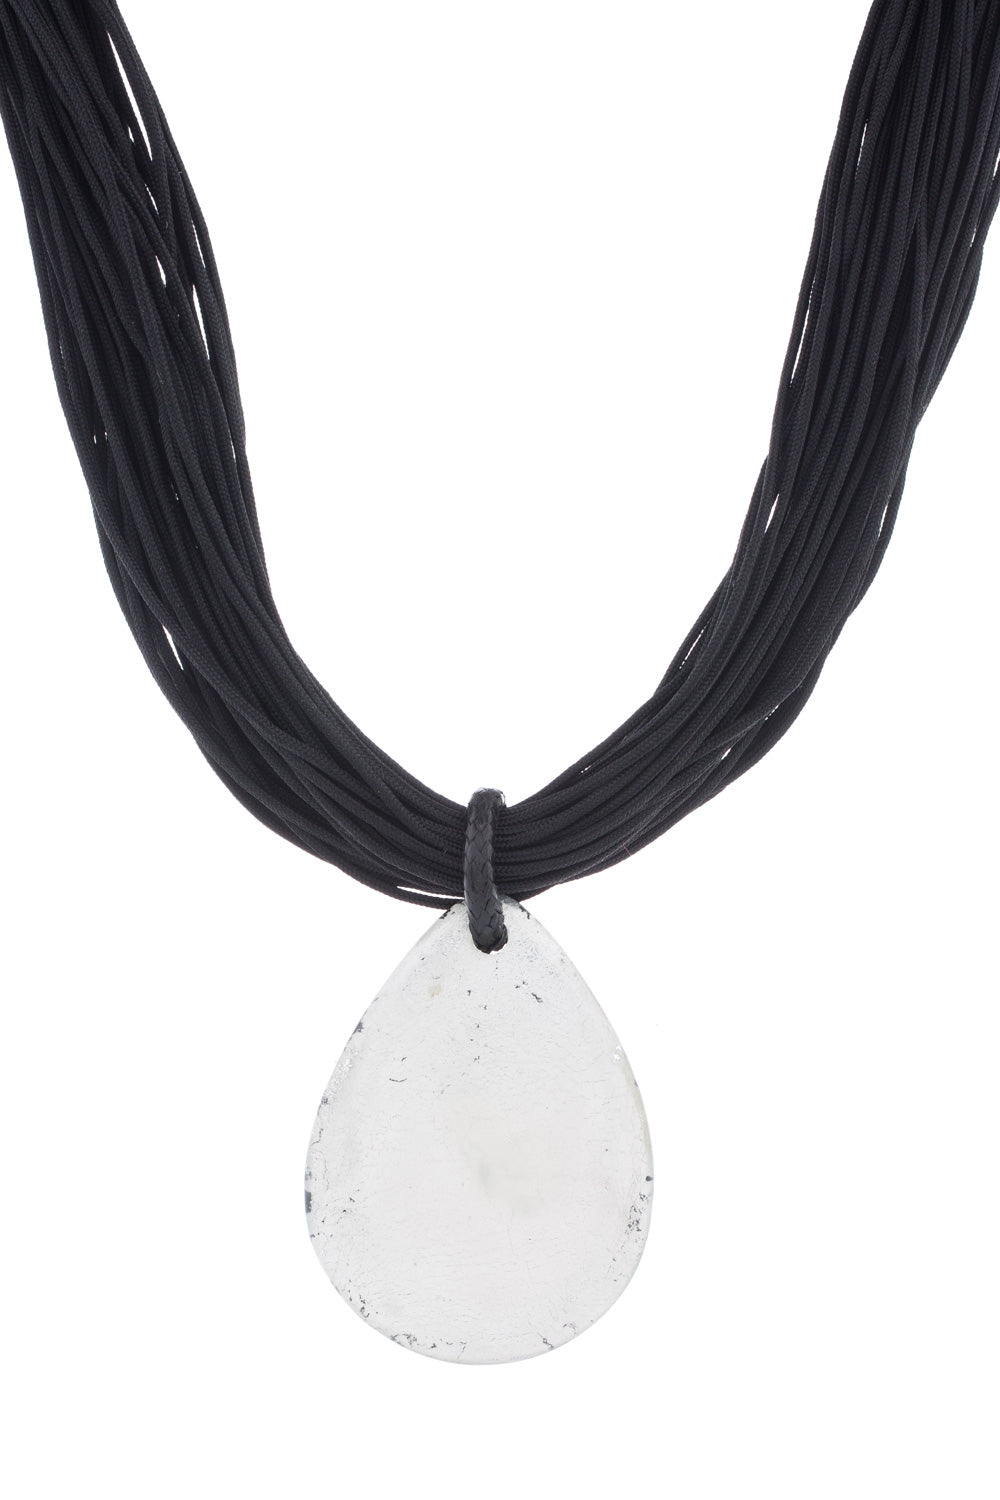 Type 4 Thunder Cloud Necklace